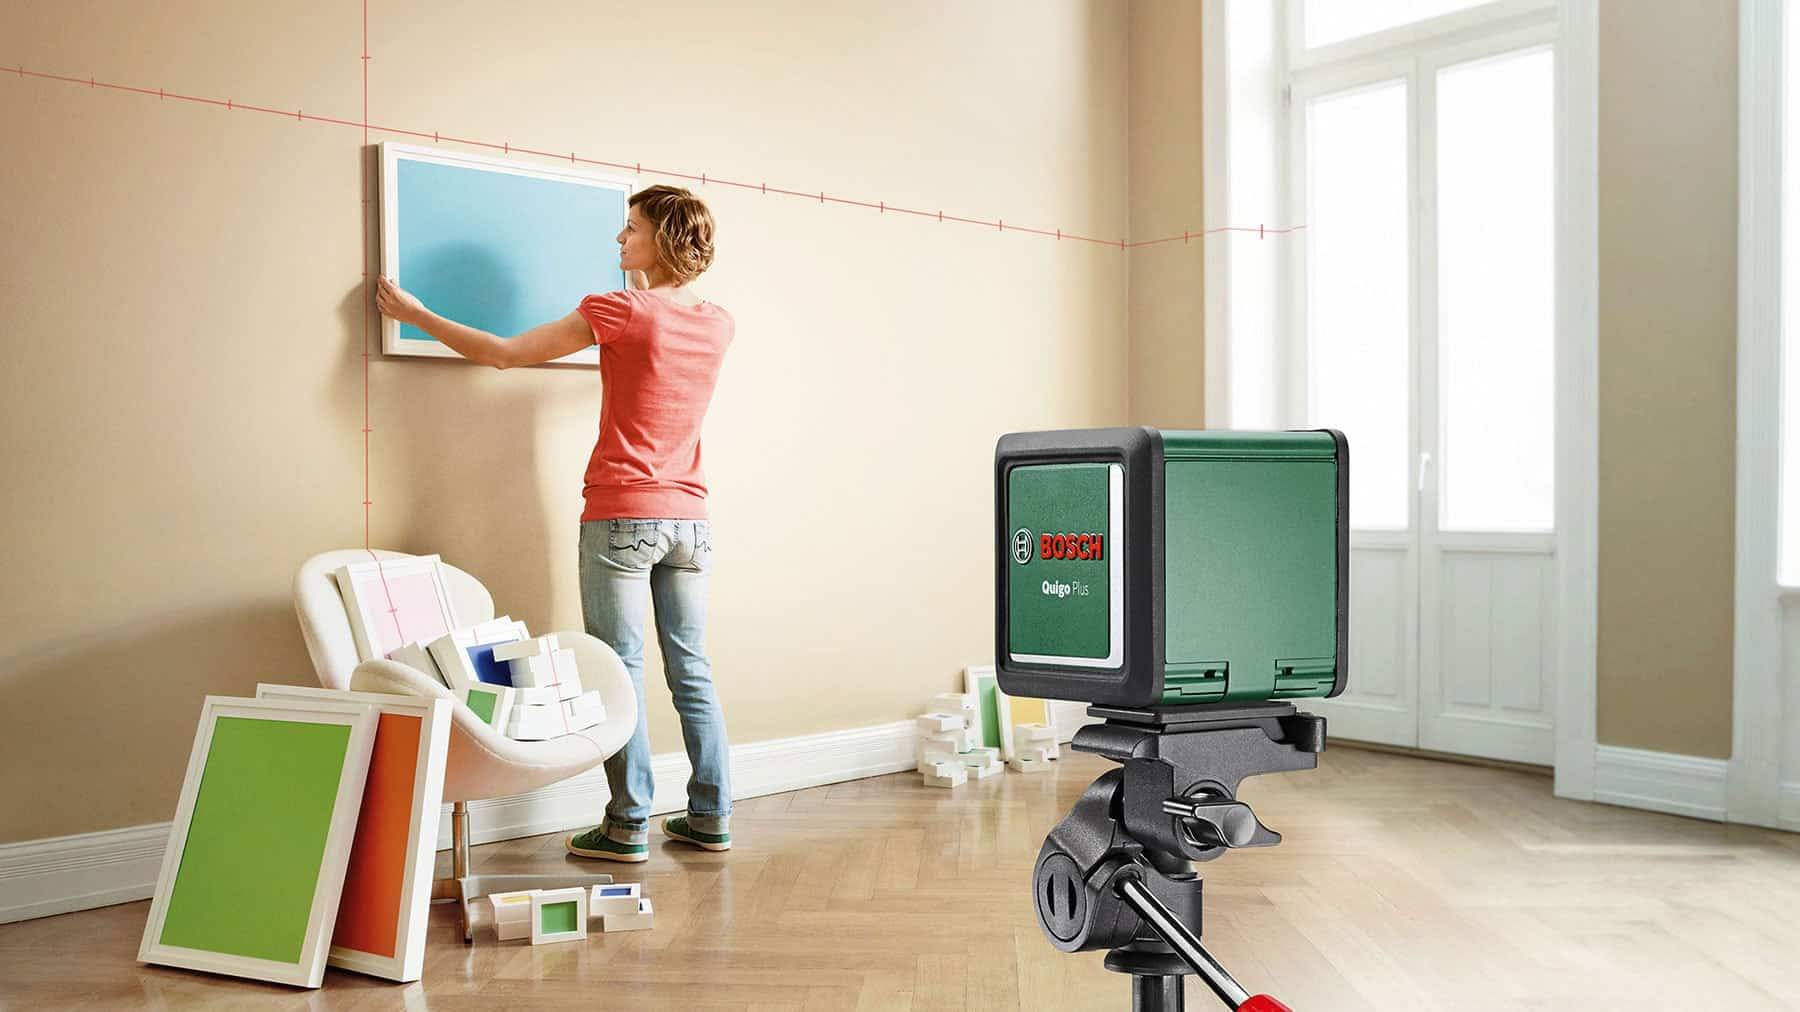 How to Use Laser Level For Hanging Pictures?